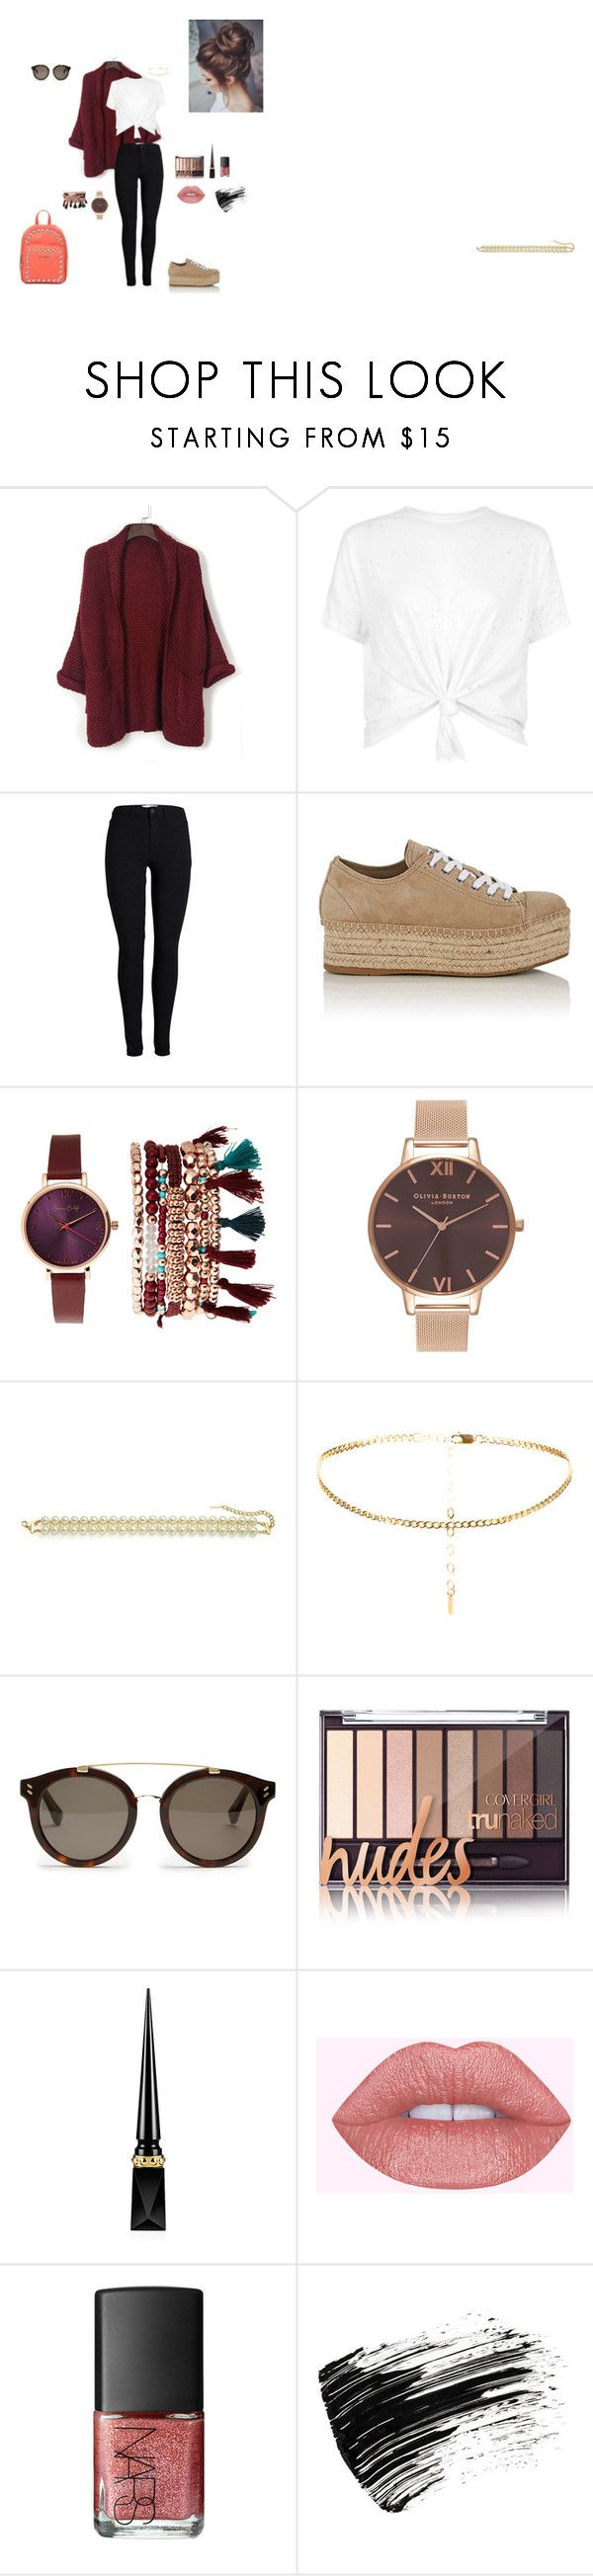 """Burdeos"" by paolamaitanl ❤ liked on Polyvore featuring WithChic, Miu Miu, Jessica Carlyle, Olivia Burton, Saks Fifth Avenue, STELLA McCARTNEY, Christian Louboutin, NARS Cosmetics, Marc Jacobs and Love Moschino"